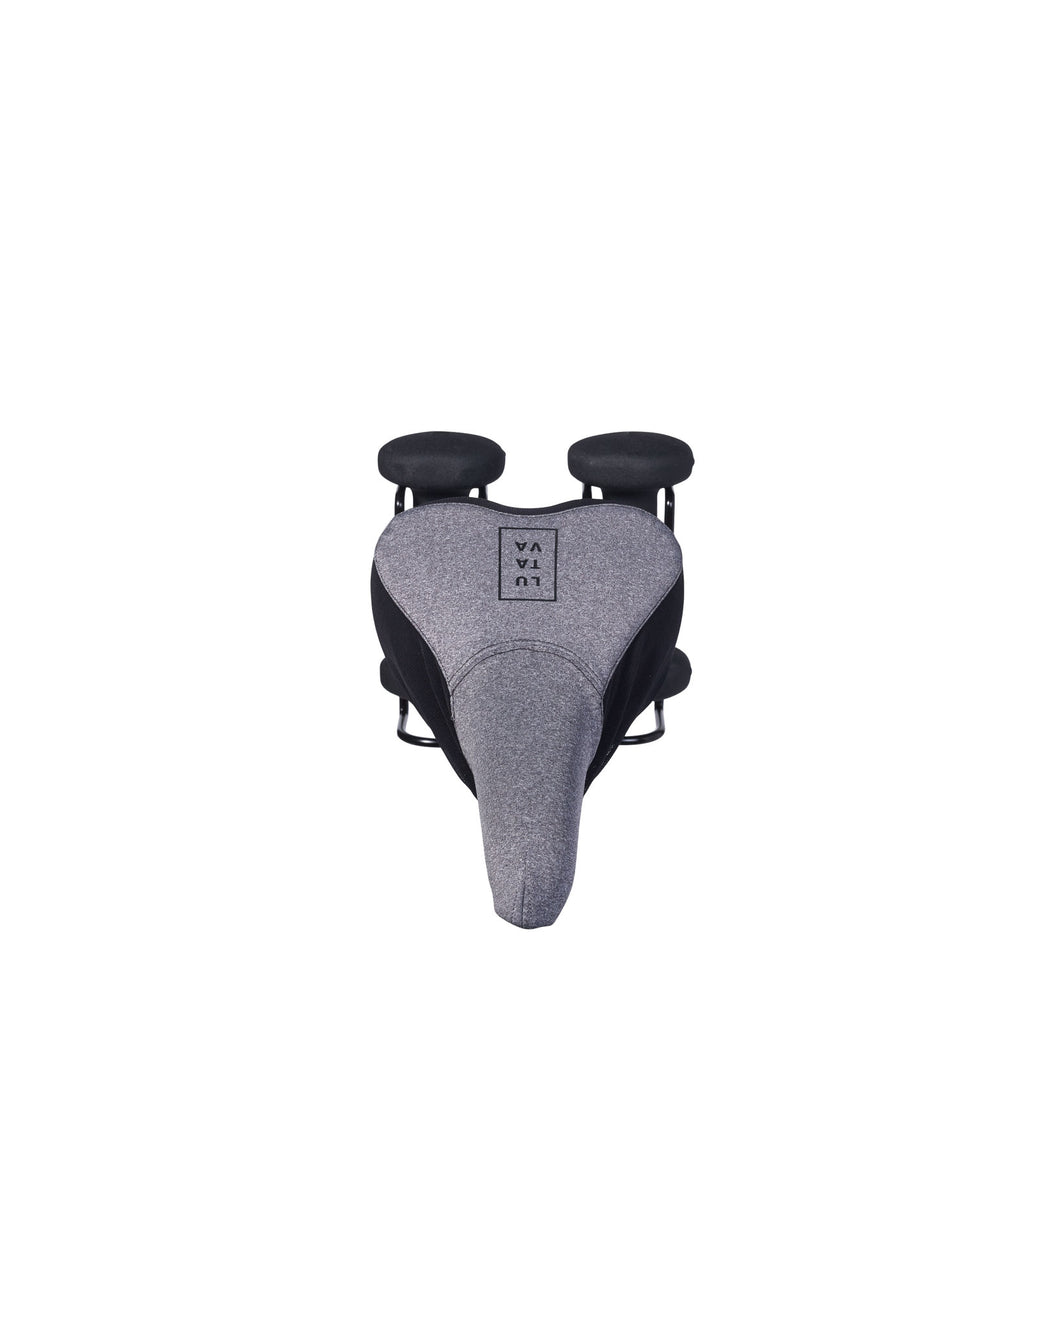 Antimicrobial Saddle Slip Cover